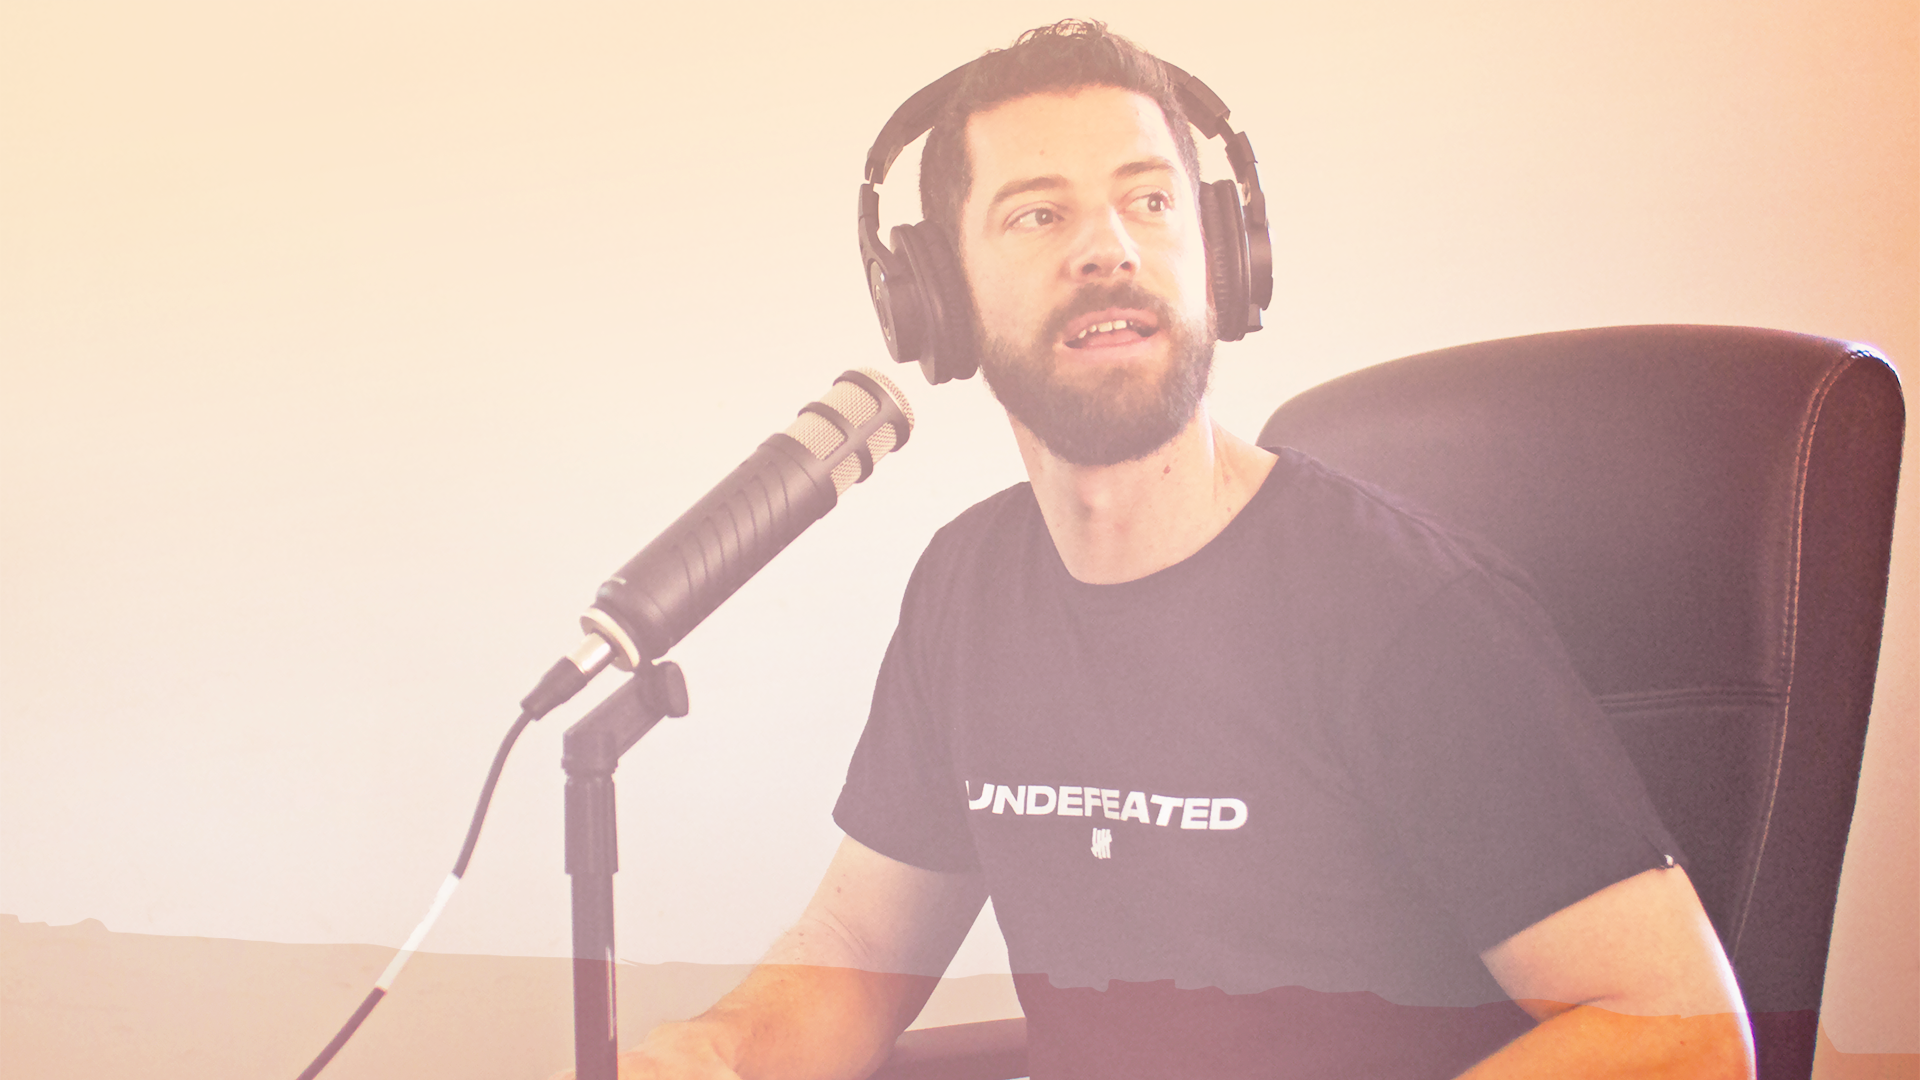 Mike hosting a podcast live recording